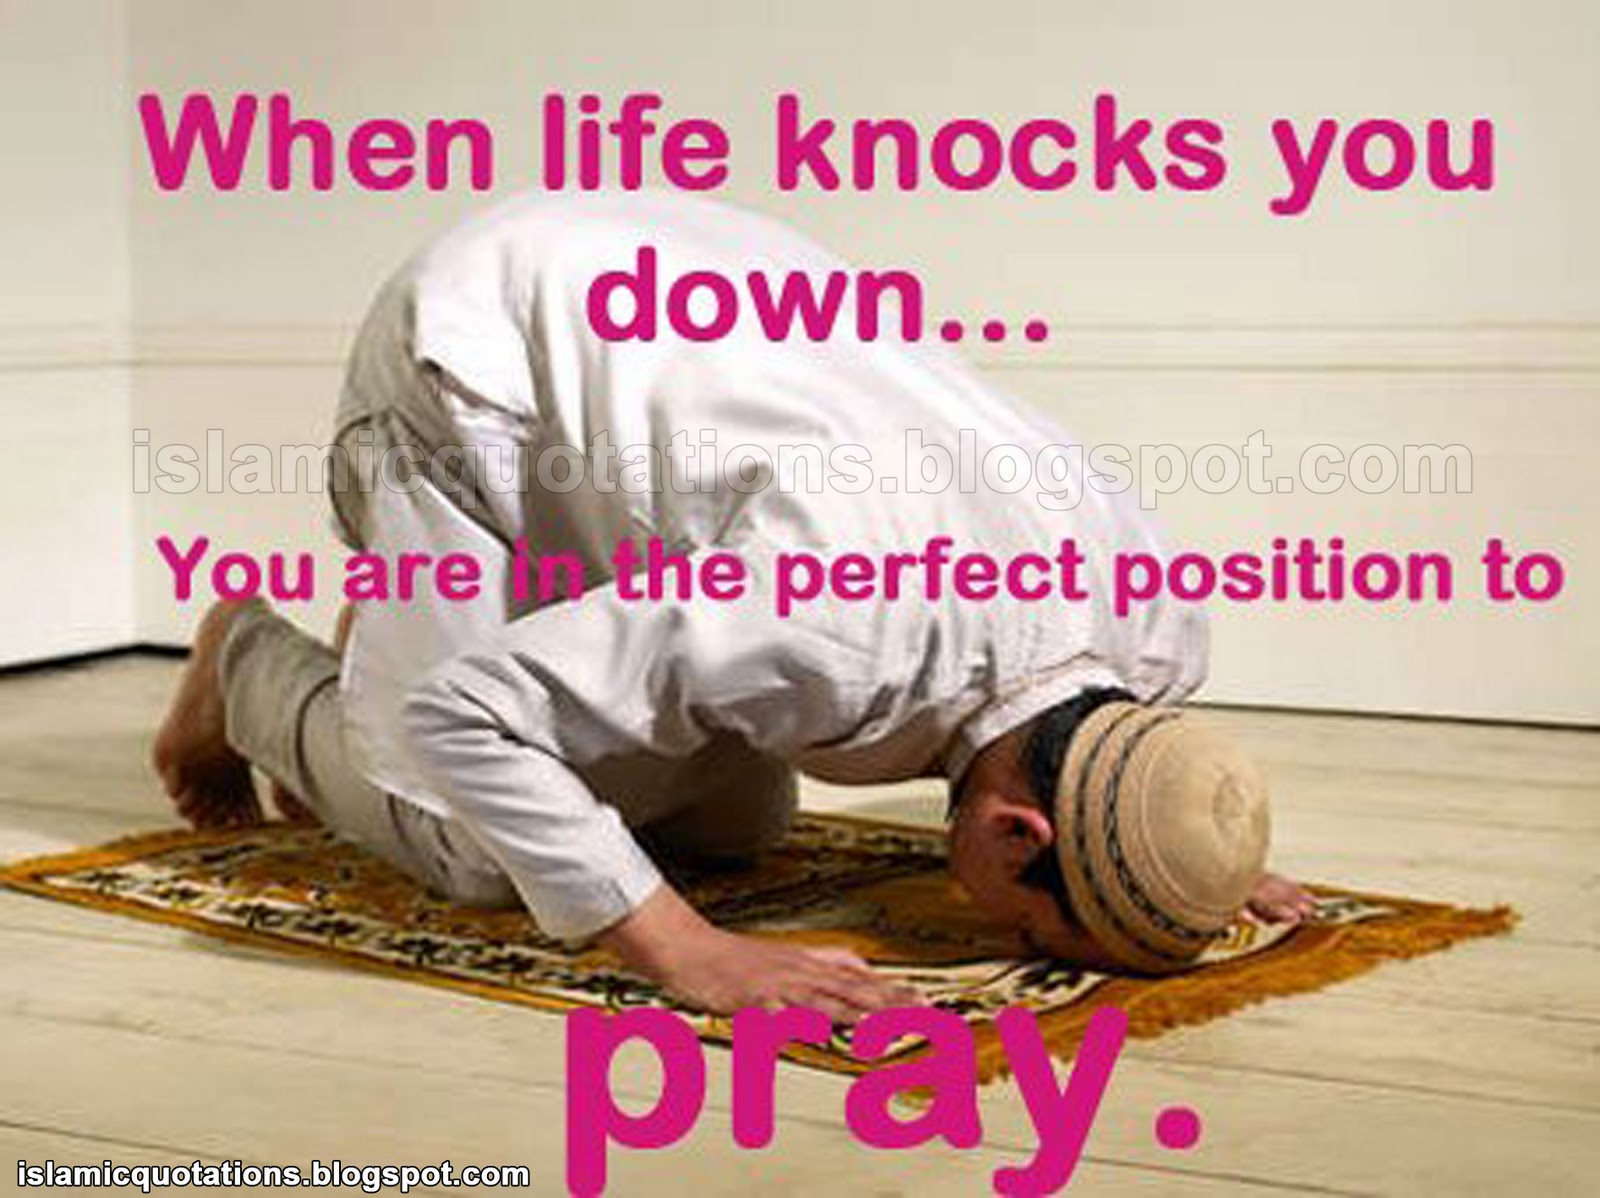 Islamic Quotes About Life Islamic Quotations When Life Knocks You